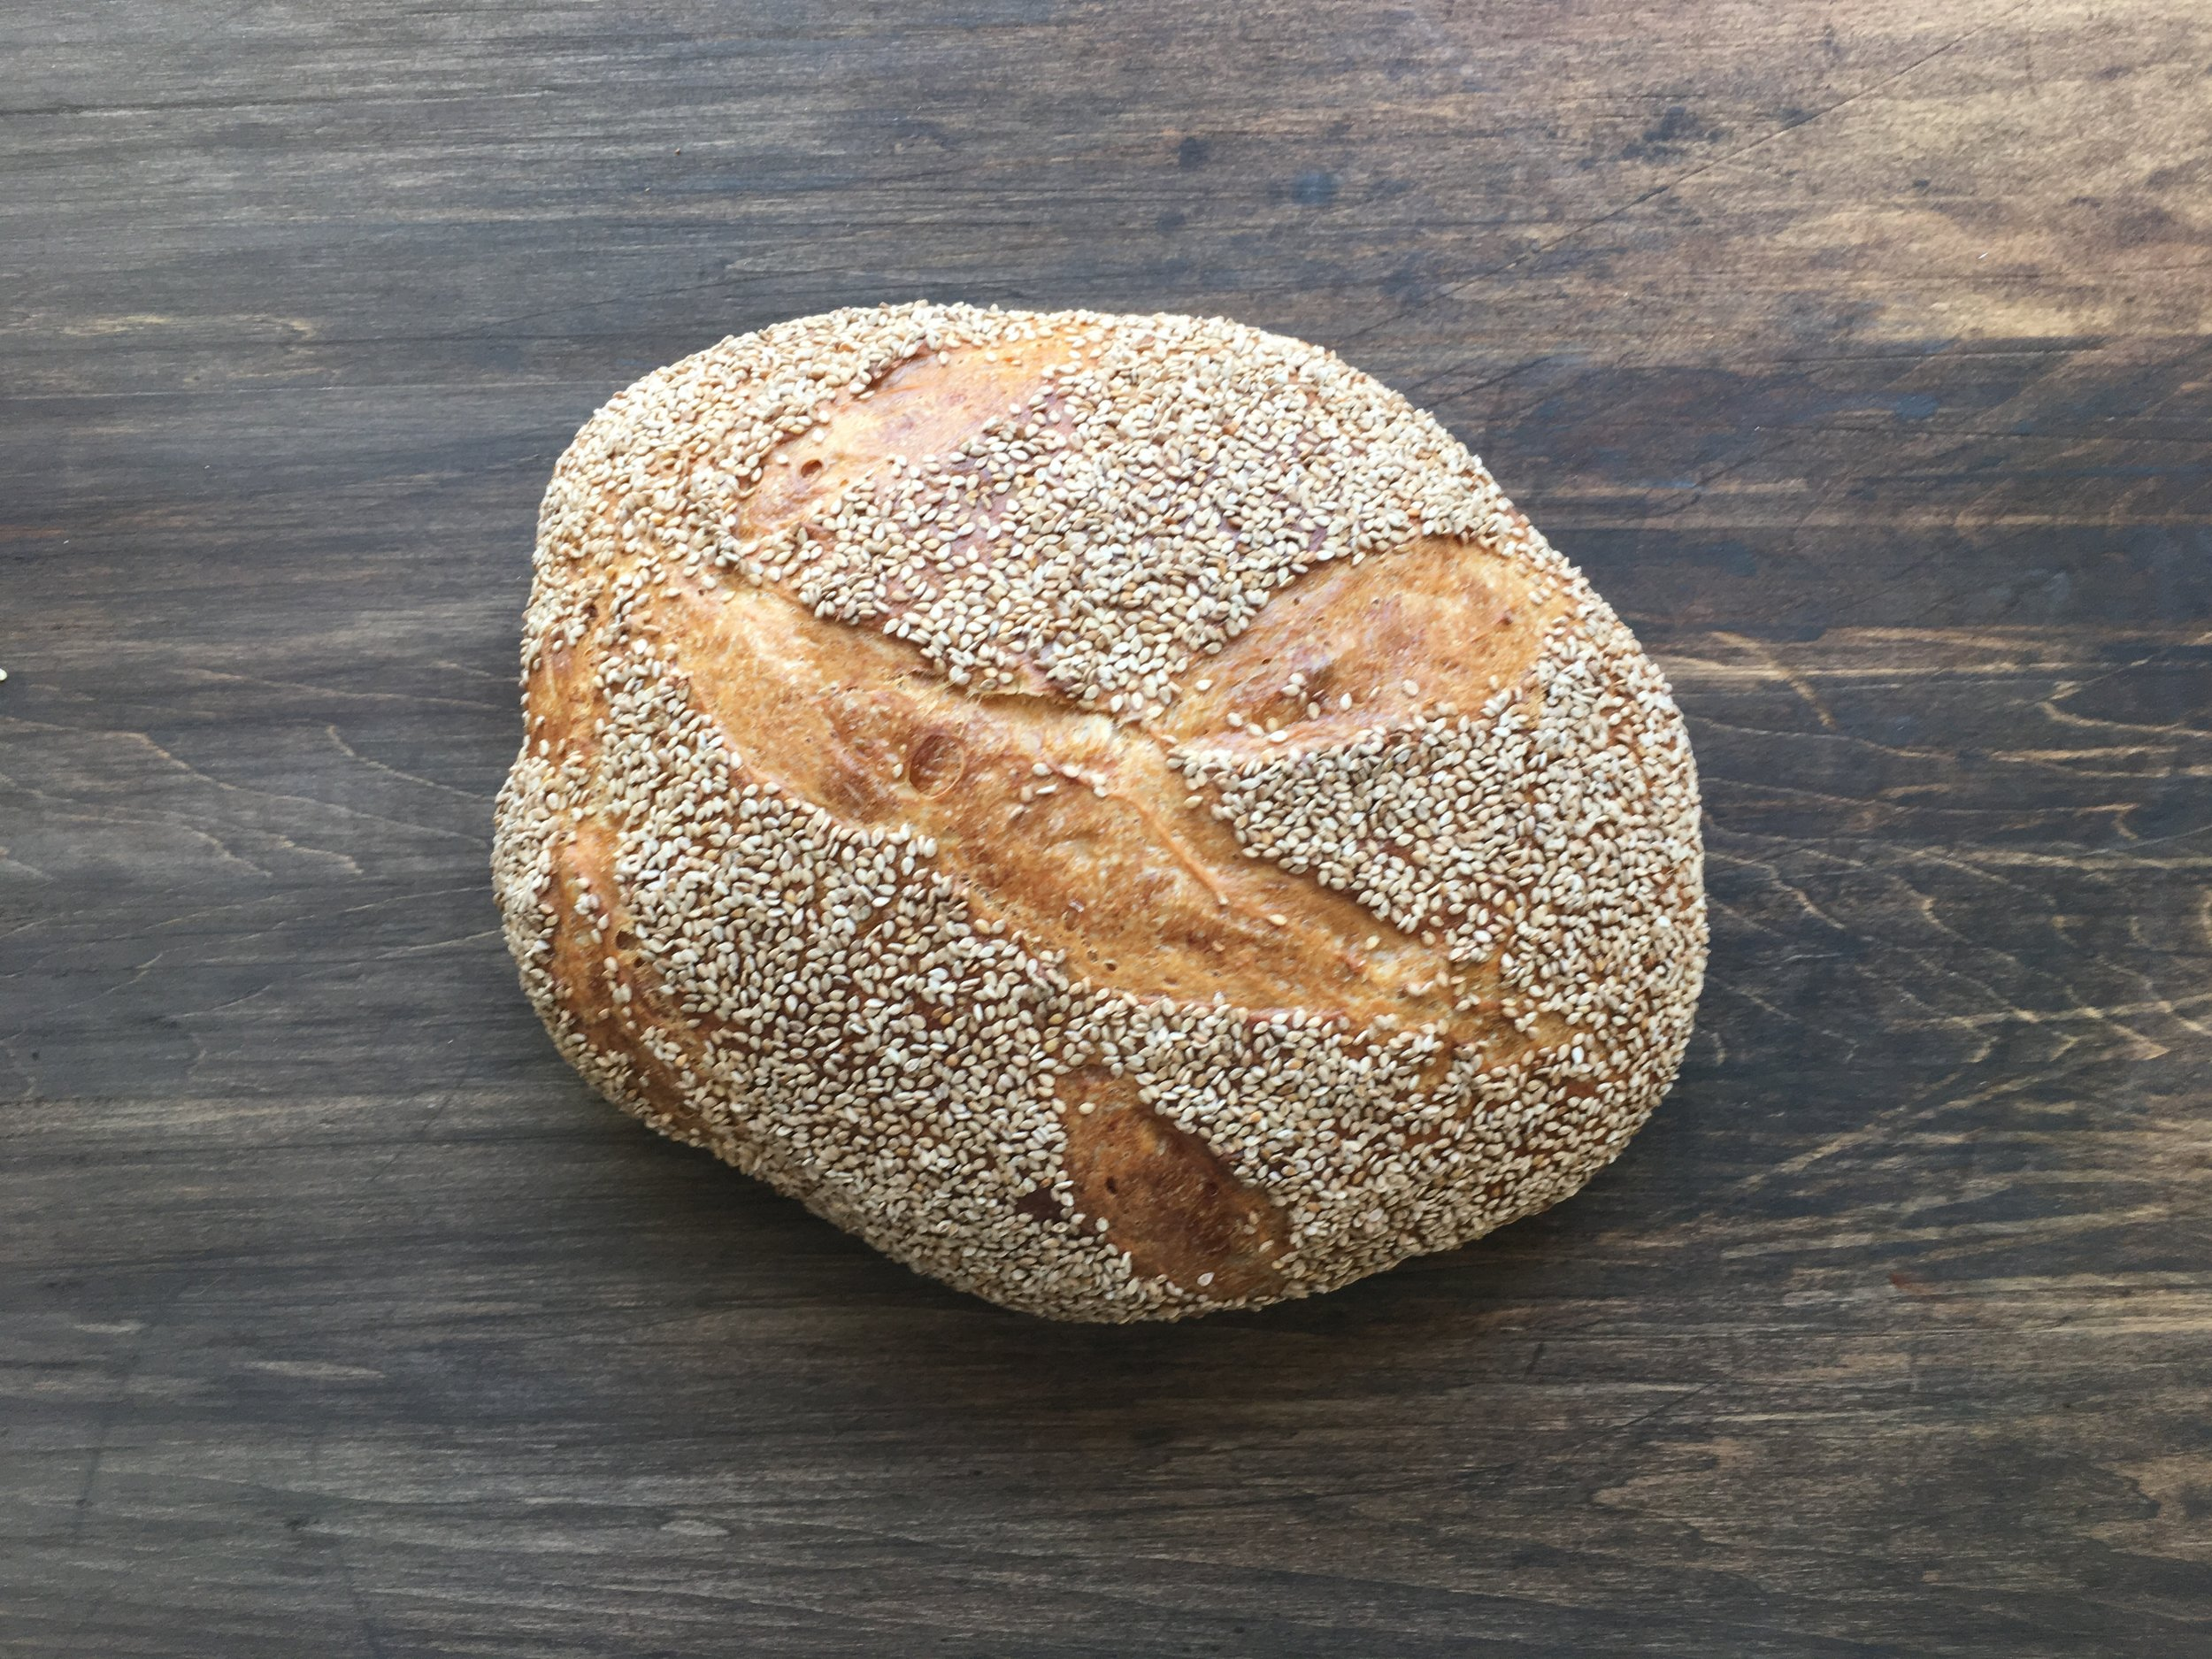 sesame semolina - The carotenoids in semolina give this light but flavorful bread both nutritional benefits and a gorgeous golden color.saturdays$5.75